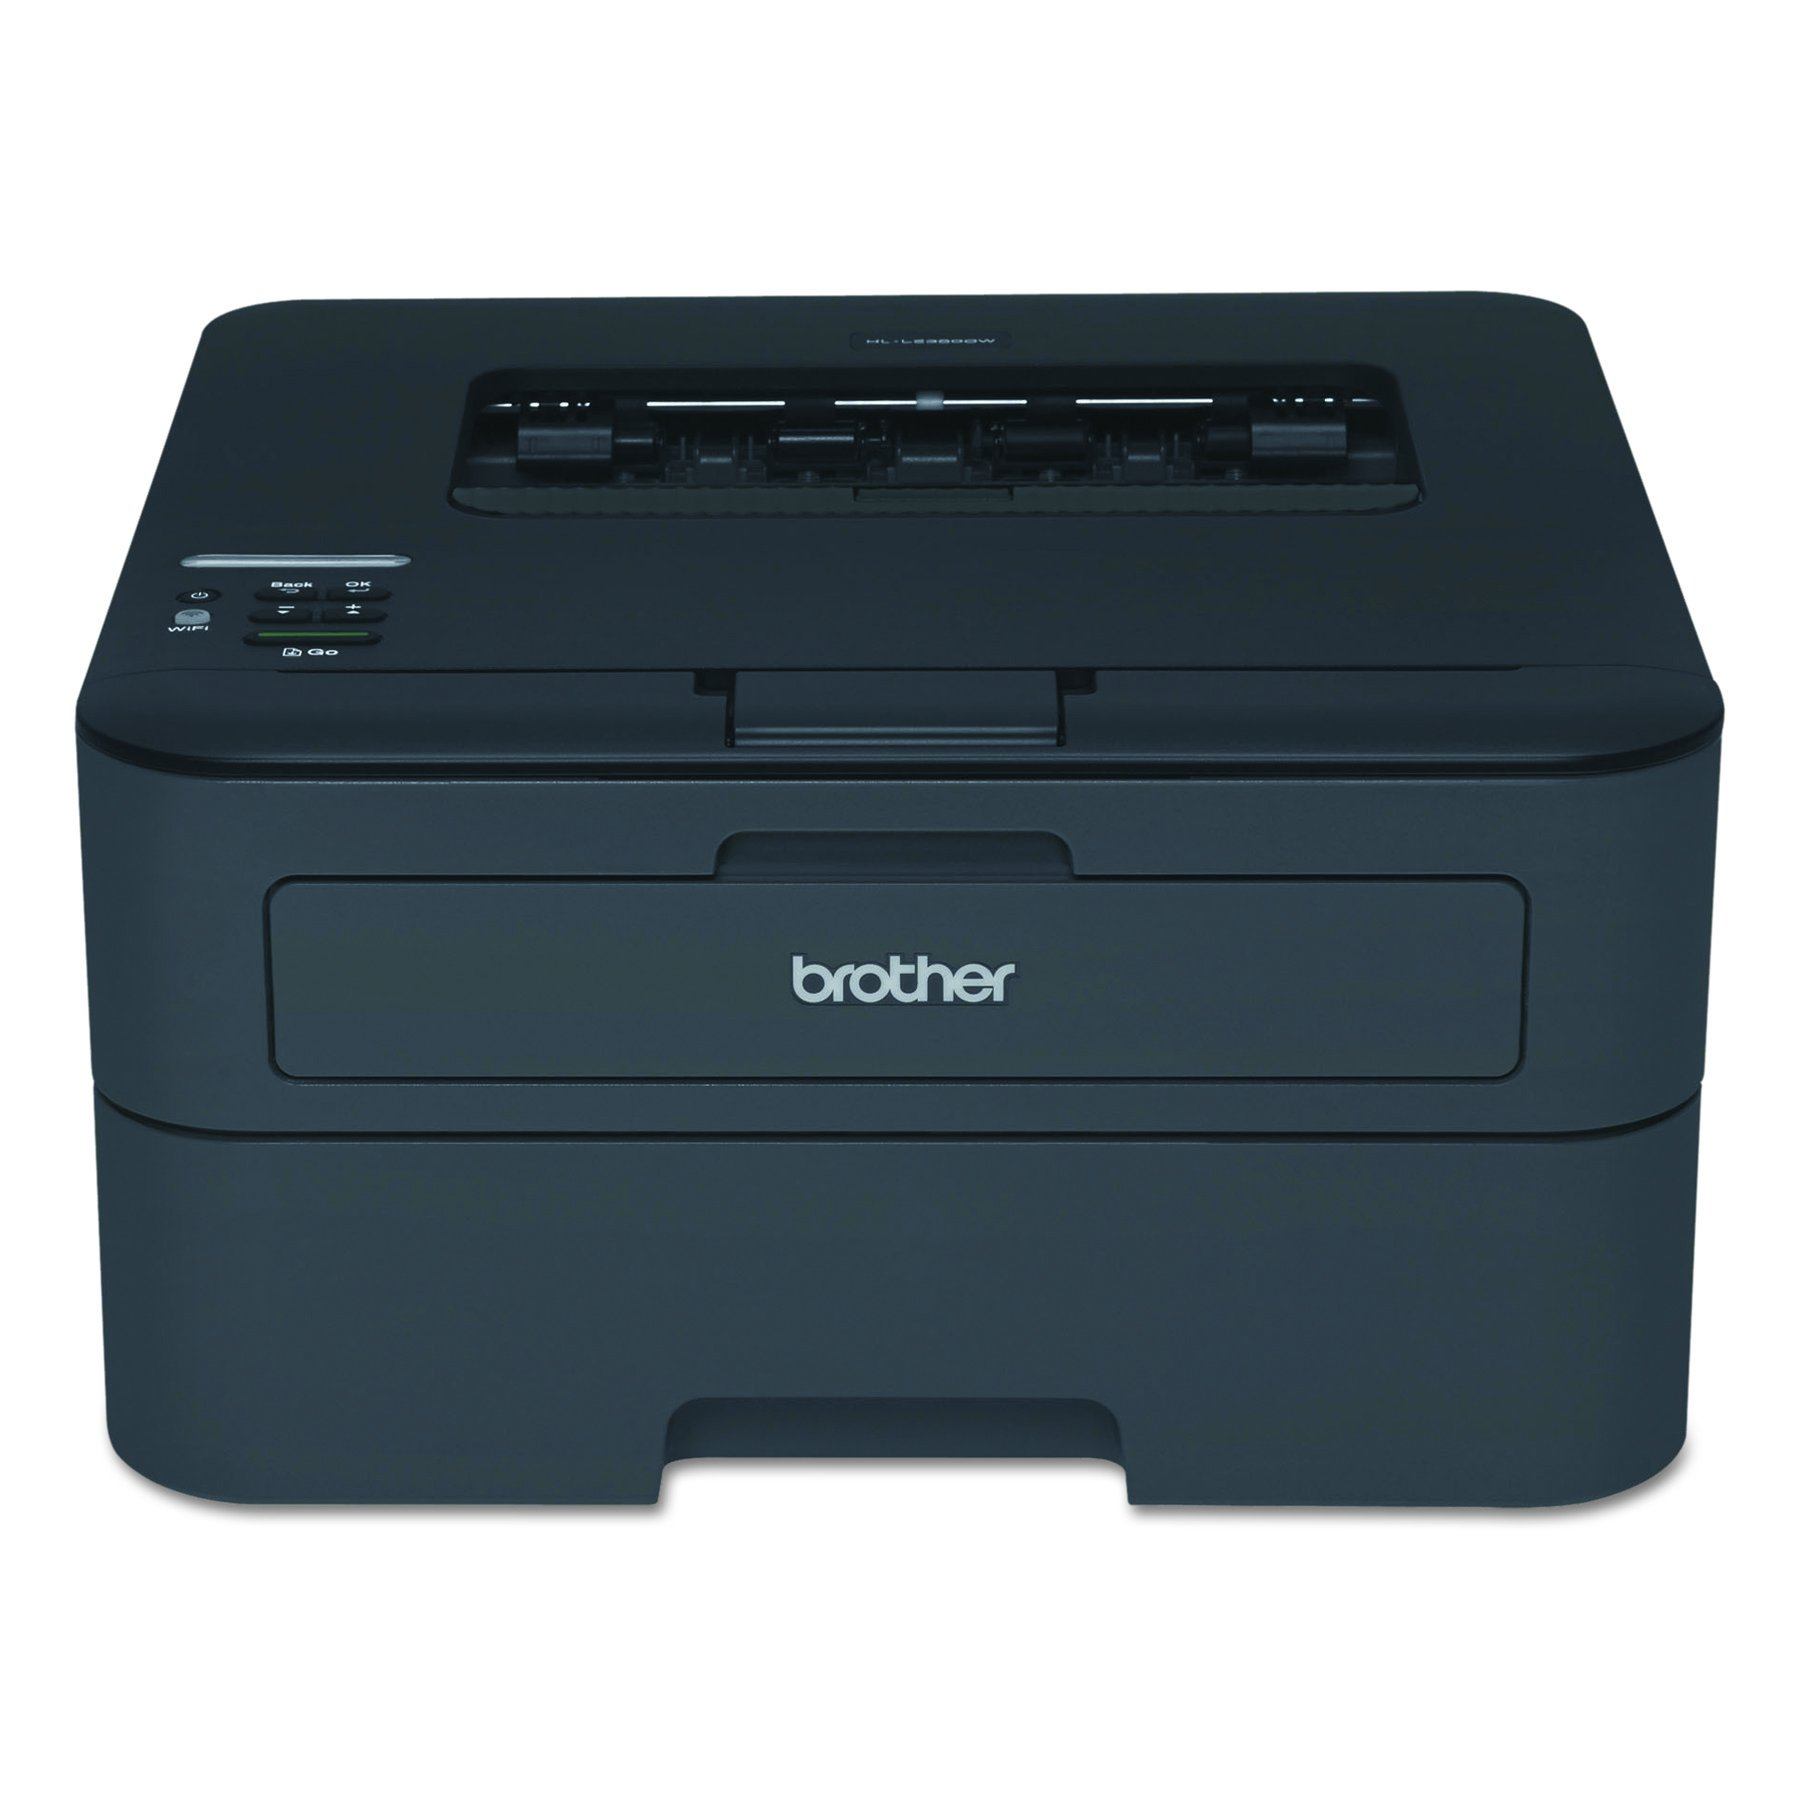 Brother HL-L2340DW Compact Laser Printer, Monochrome, Wireless, Duplex Printing, Amazon Dash Replenishment Enabled by Brother